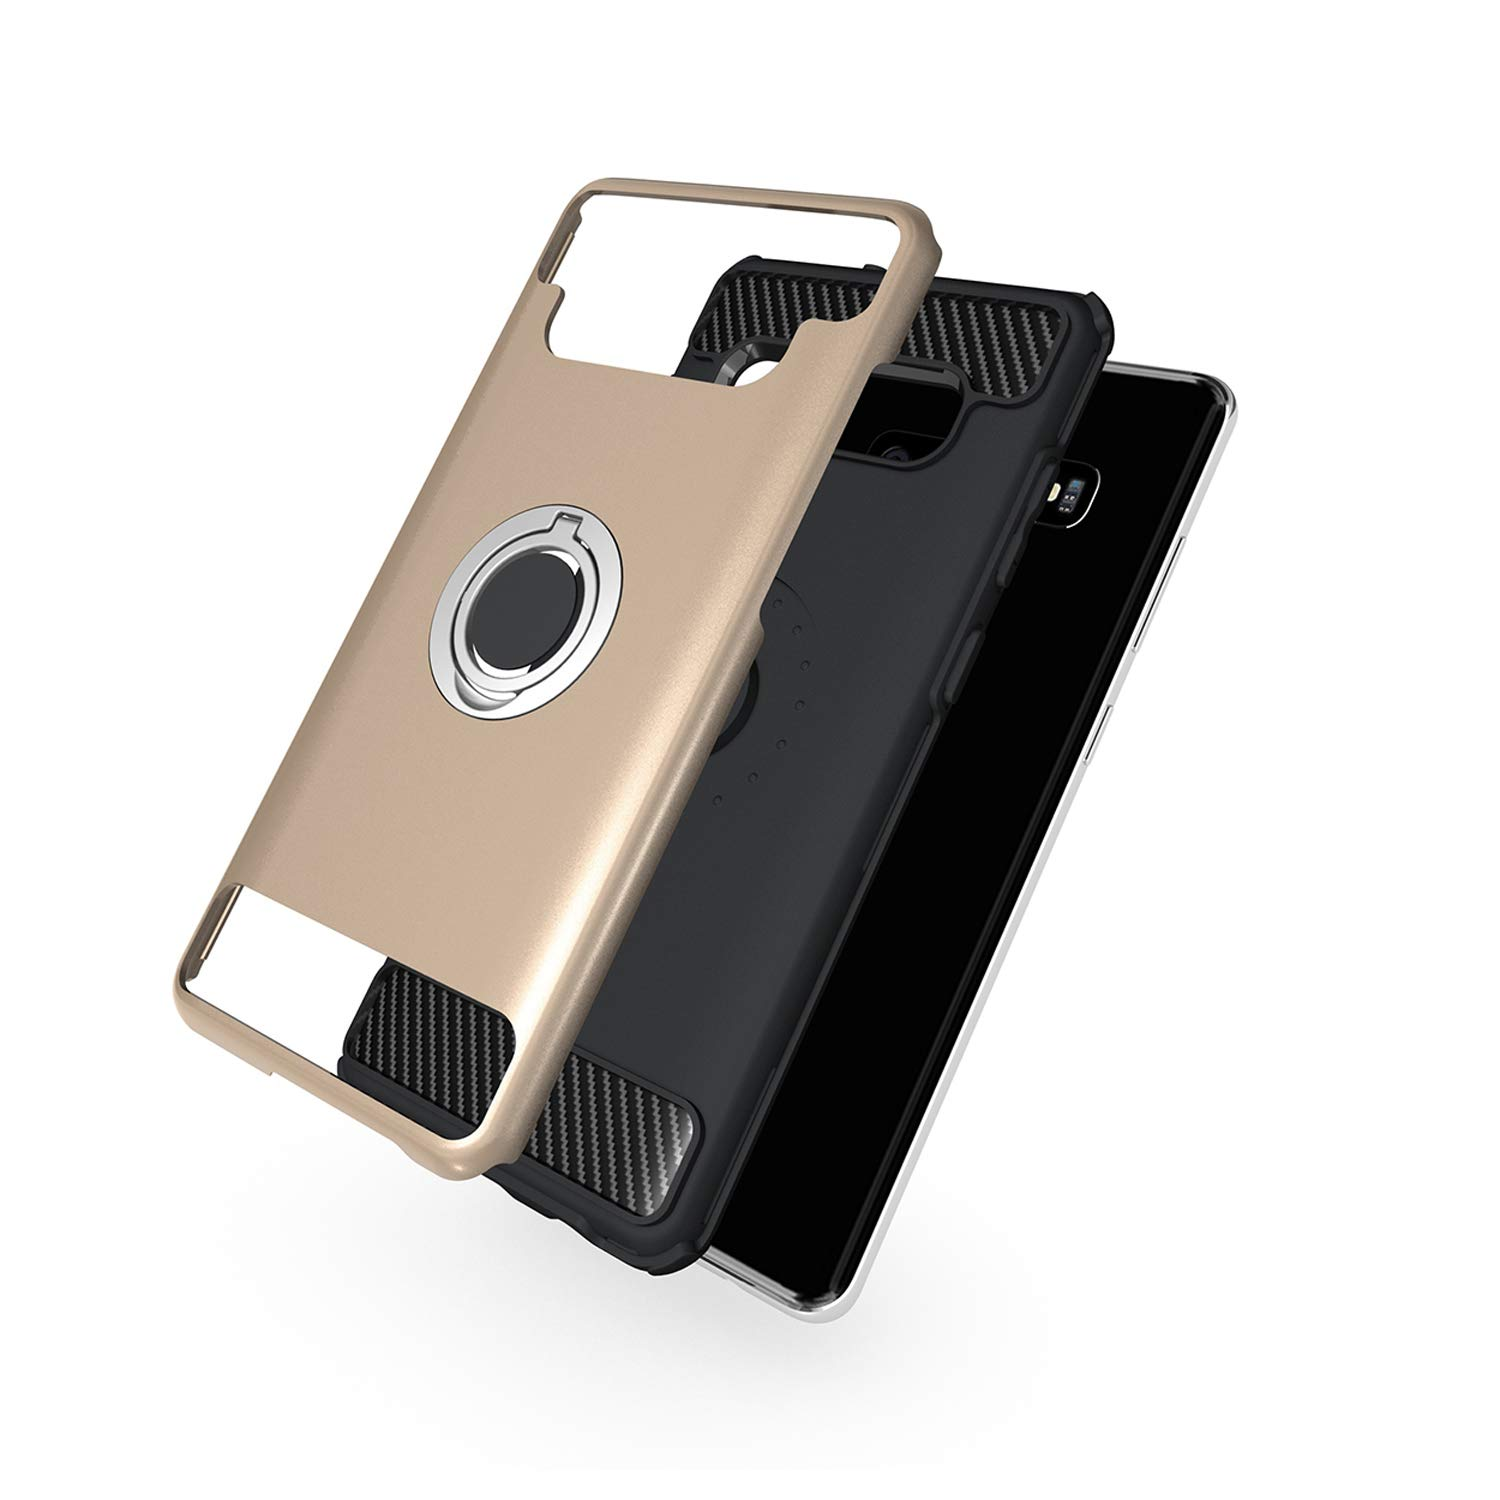 Case with Armor Dual Layer 2 in 1 with Extreme Heavy Duty Protection and Finger Ring Holder Kickstand Fit Magnetic Car Mount for Galaxy S10 Plus-Black Newseego Compatible with Samsung Galaxy S10